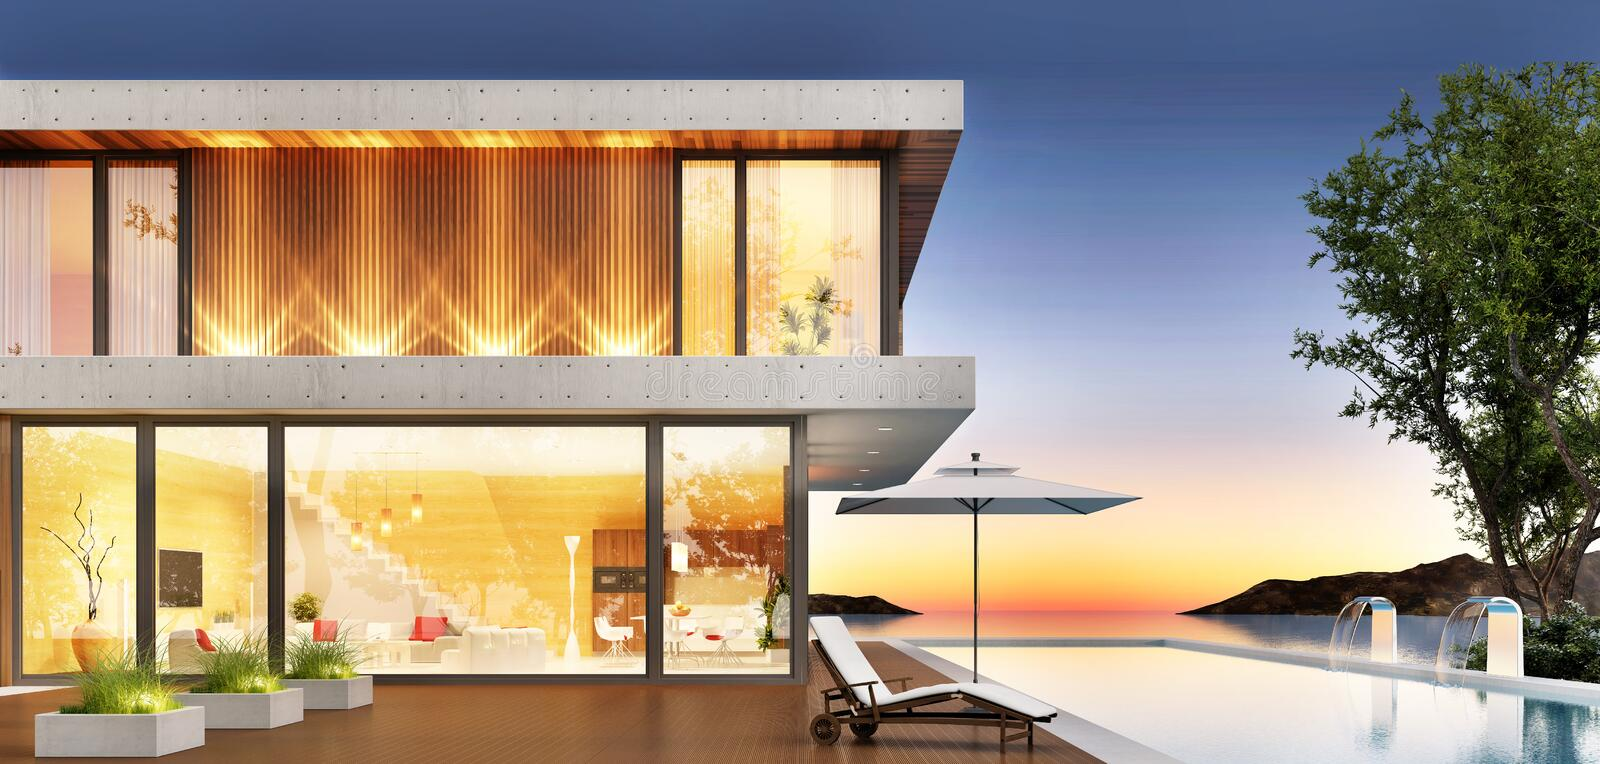 Luxury house with pool and terrace for relaxing royalty free illustration